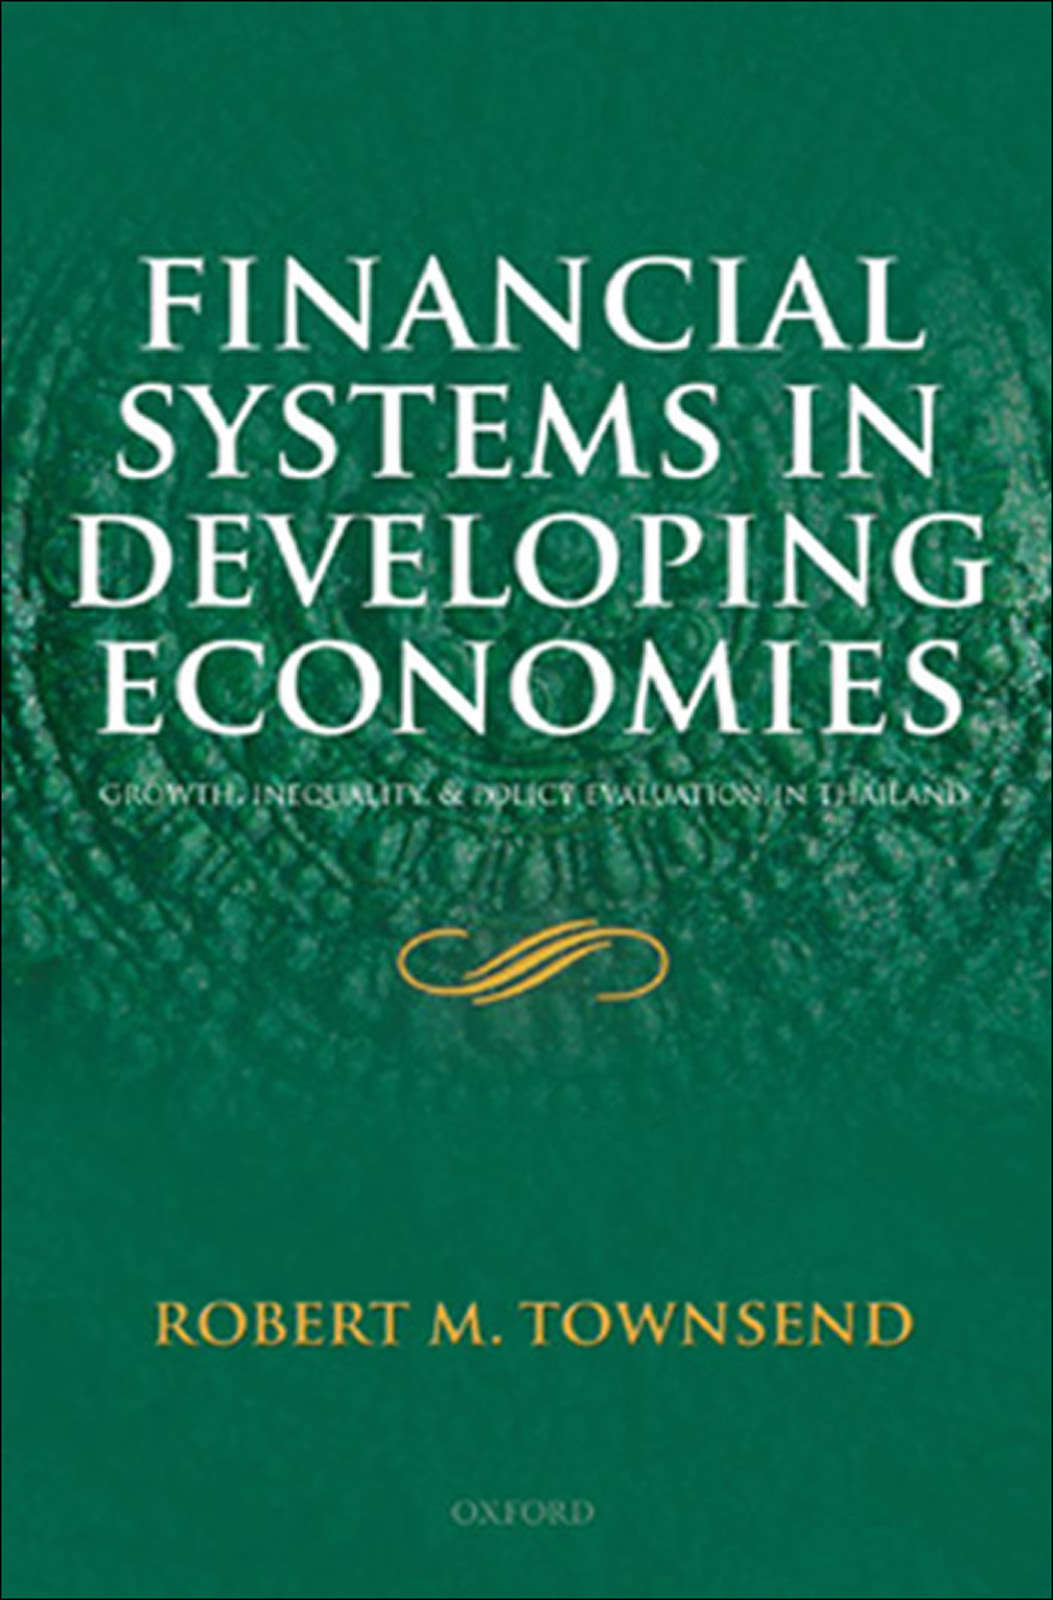 Financial Systems in Developing Economies:Growth, Inequality and Policy Evaluation in Thailand